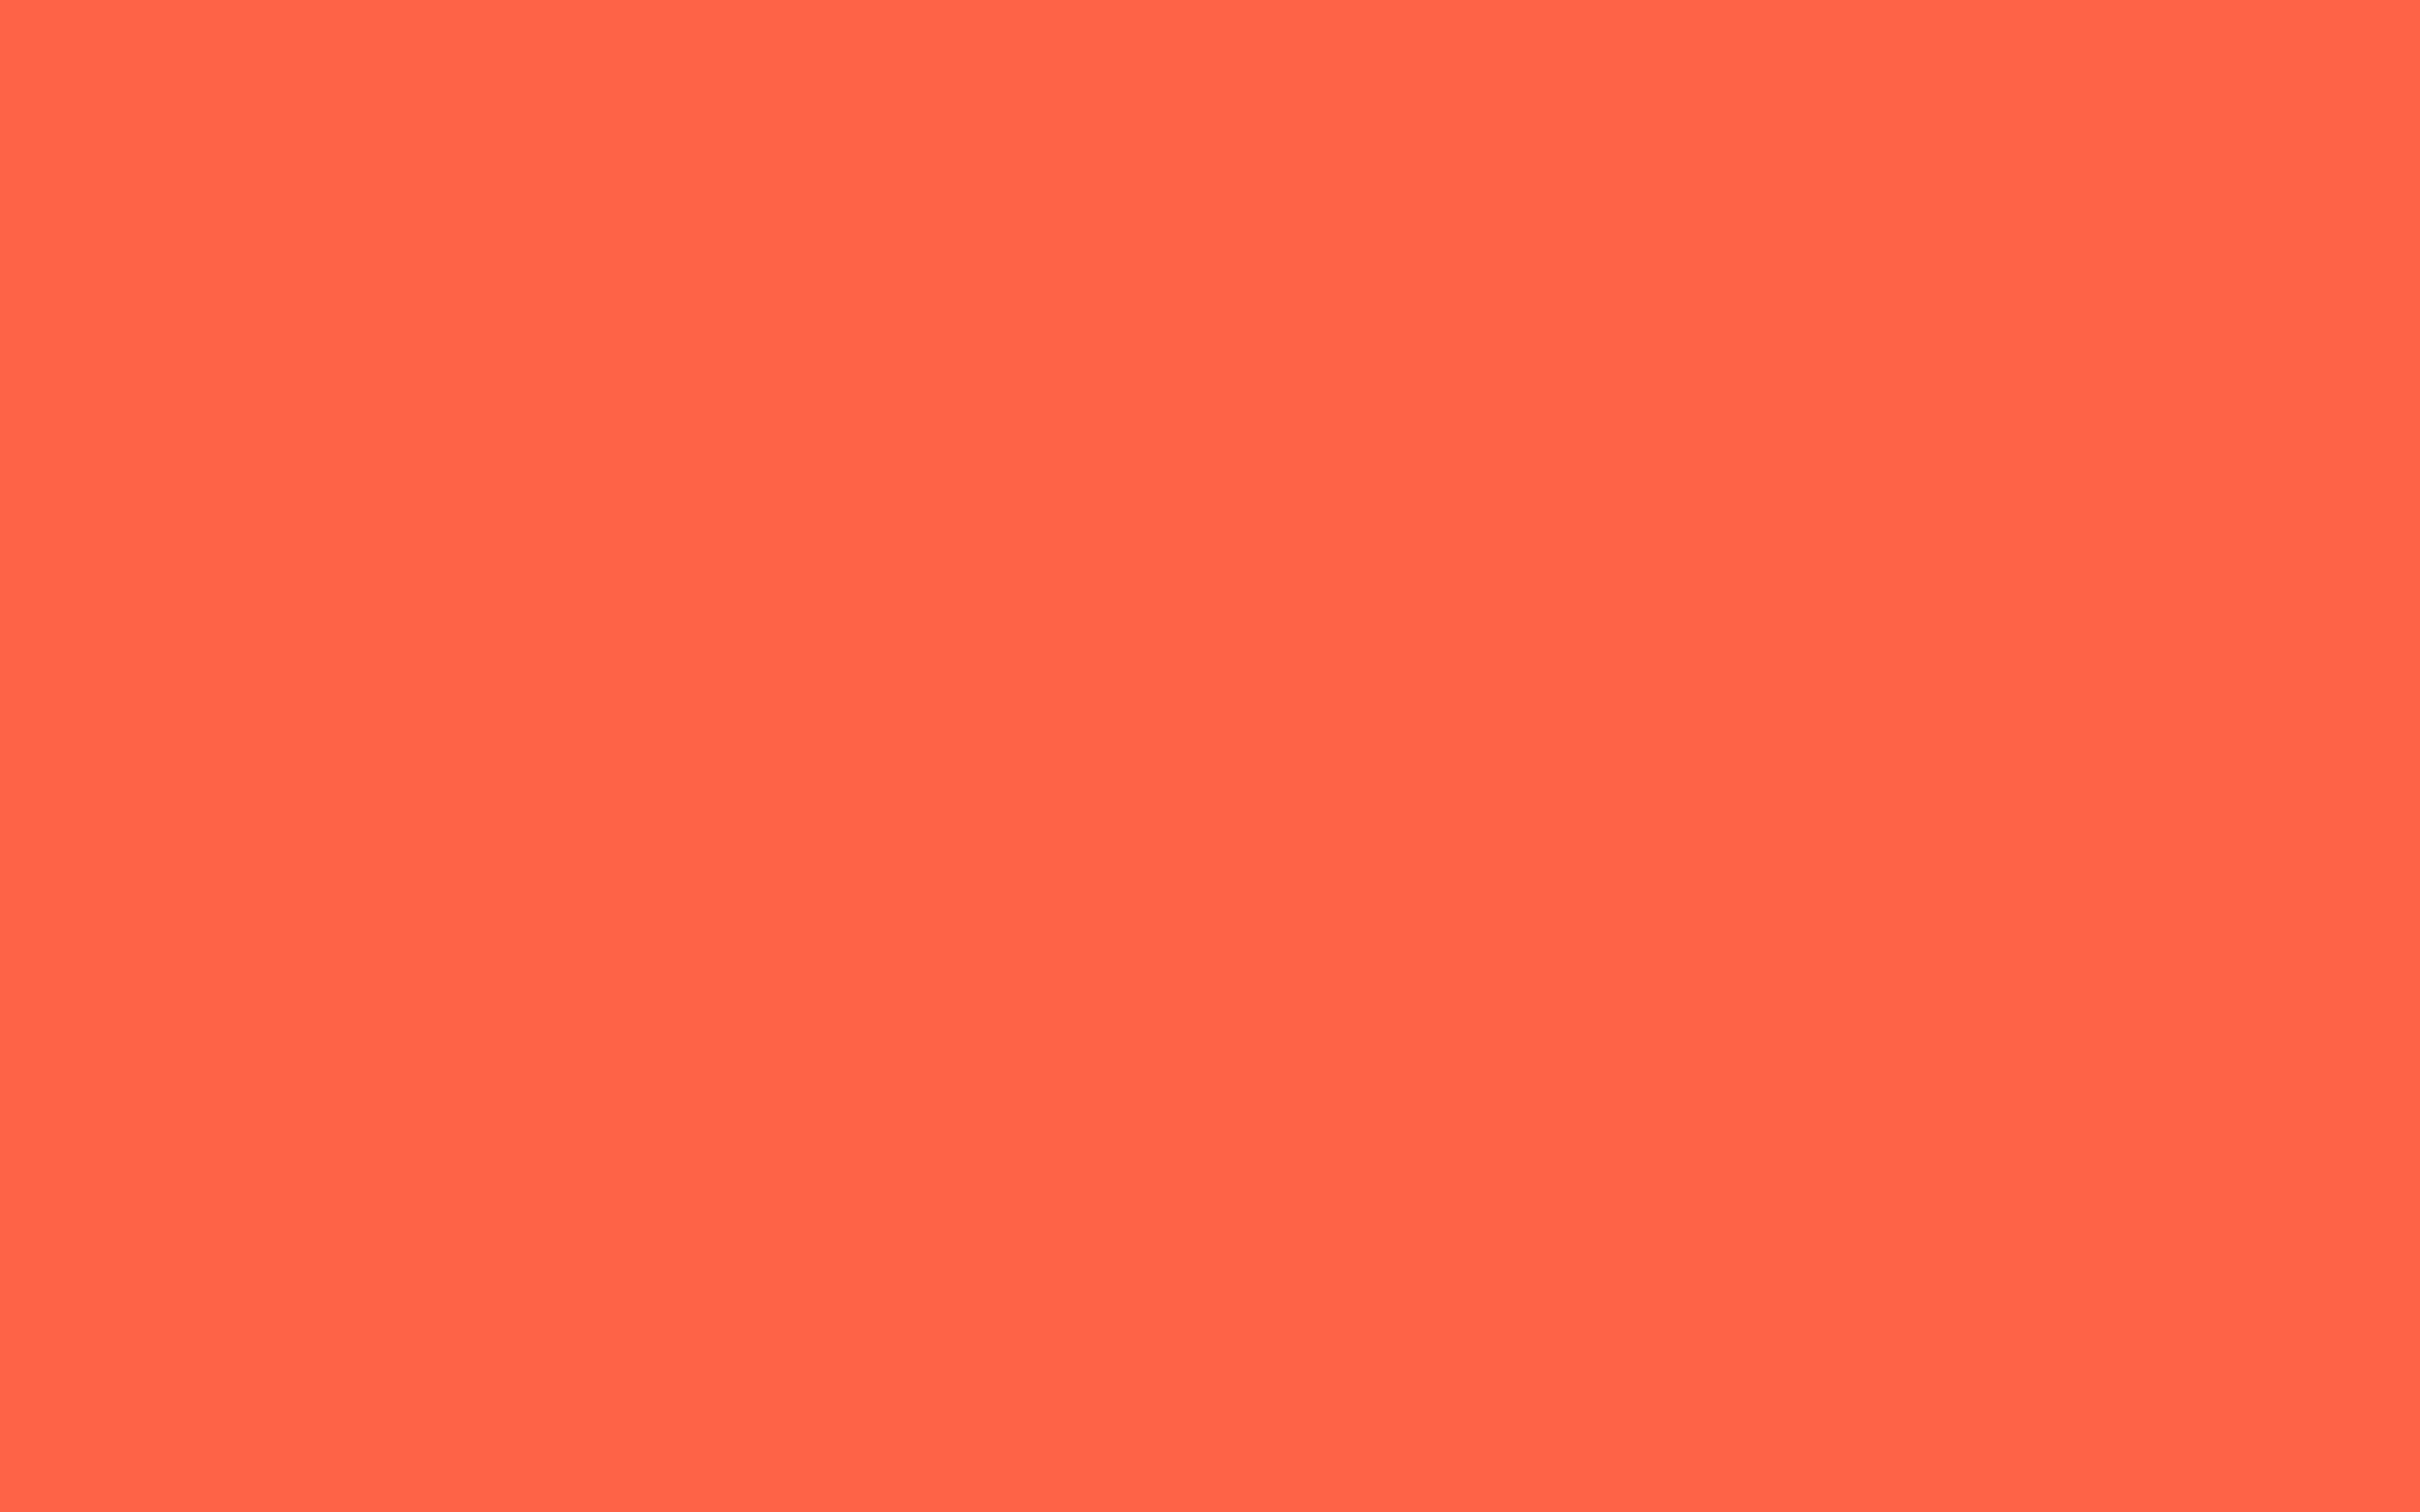 2880x1800 Tomato Solid Color Background